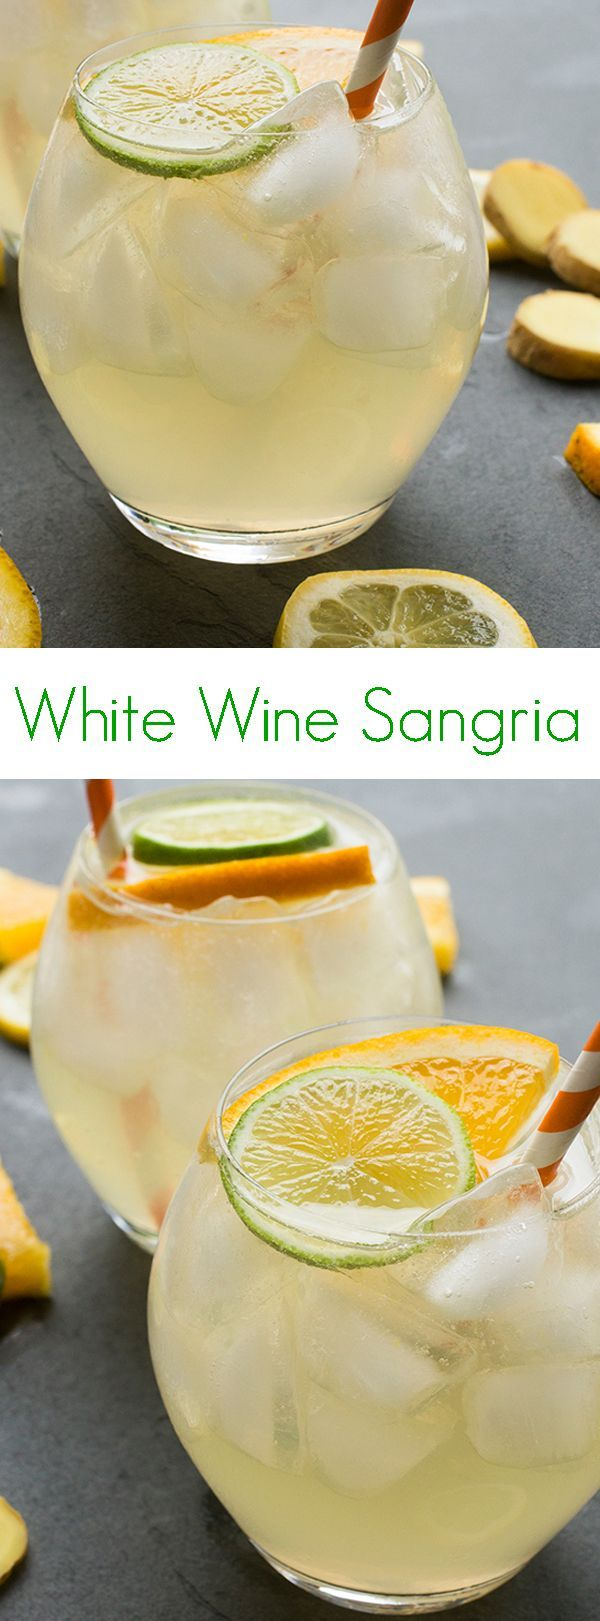 White Wine Sangria - The ultimate party drink, this recipe is ideal for entertaining a crowd!